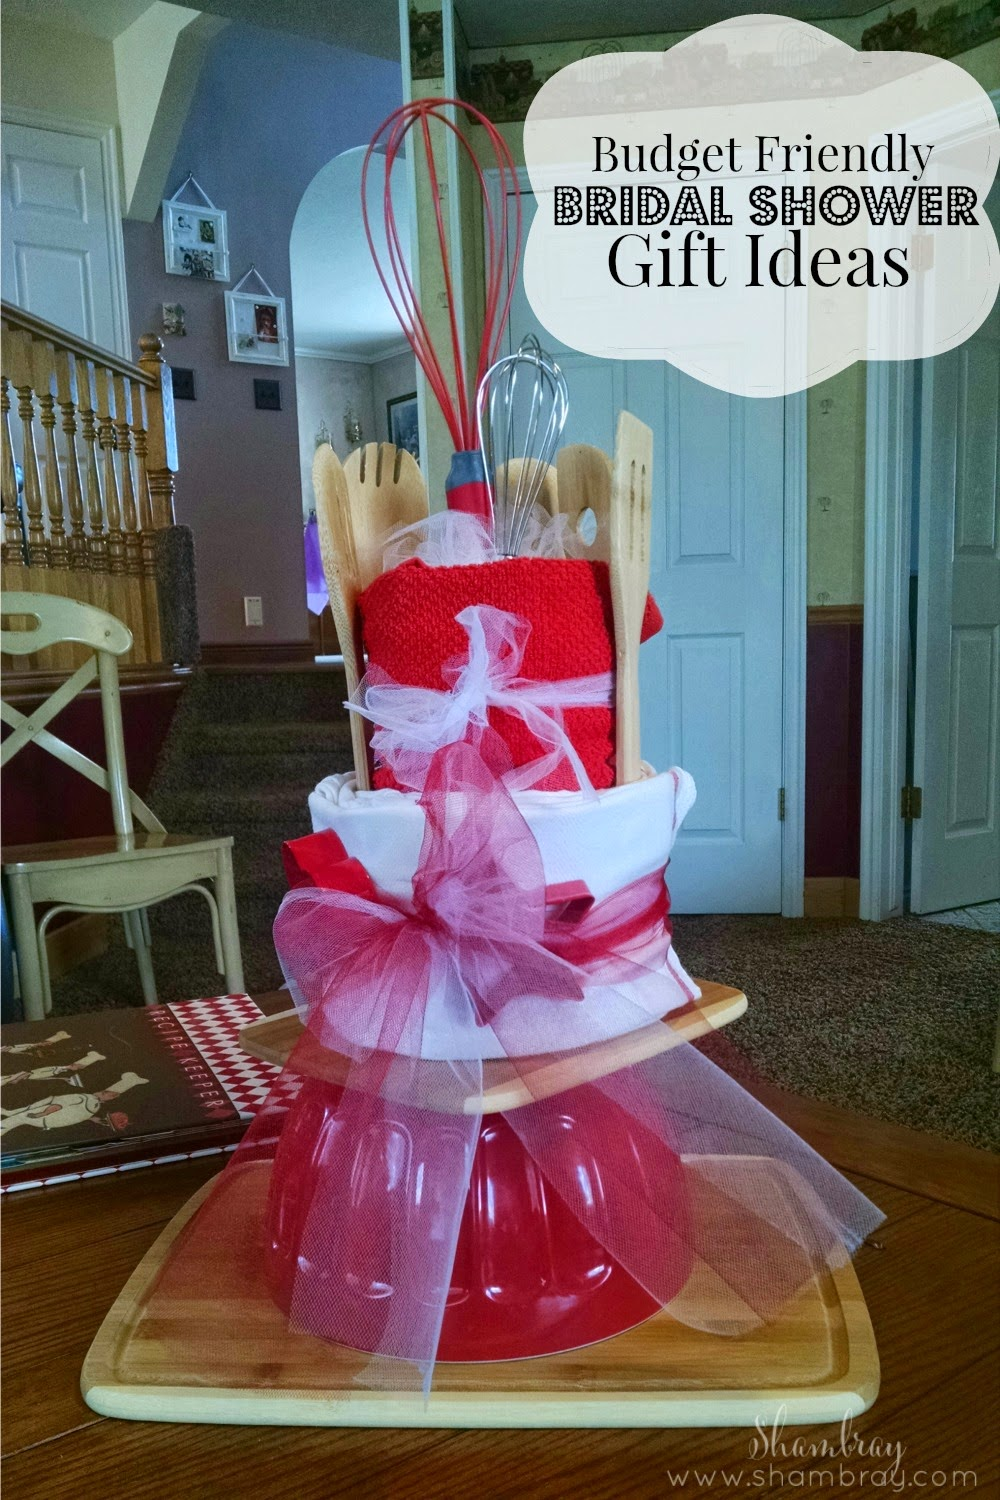 Cheap Bridal Shower Gift Basket Ideas : kitchen, towels, dish clothes, wooden spoon, whisk